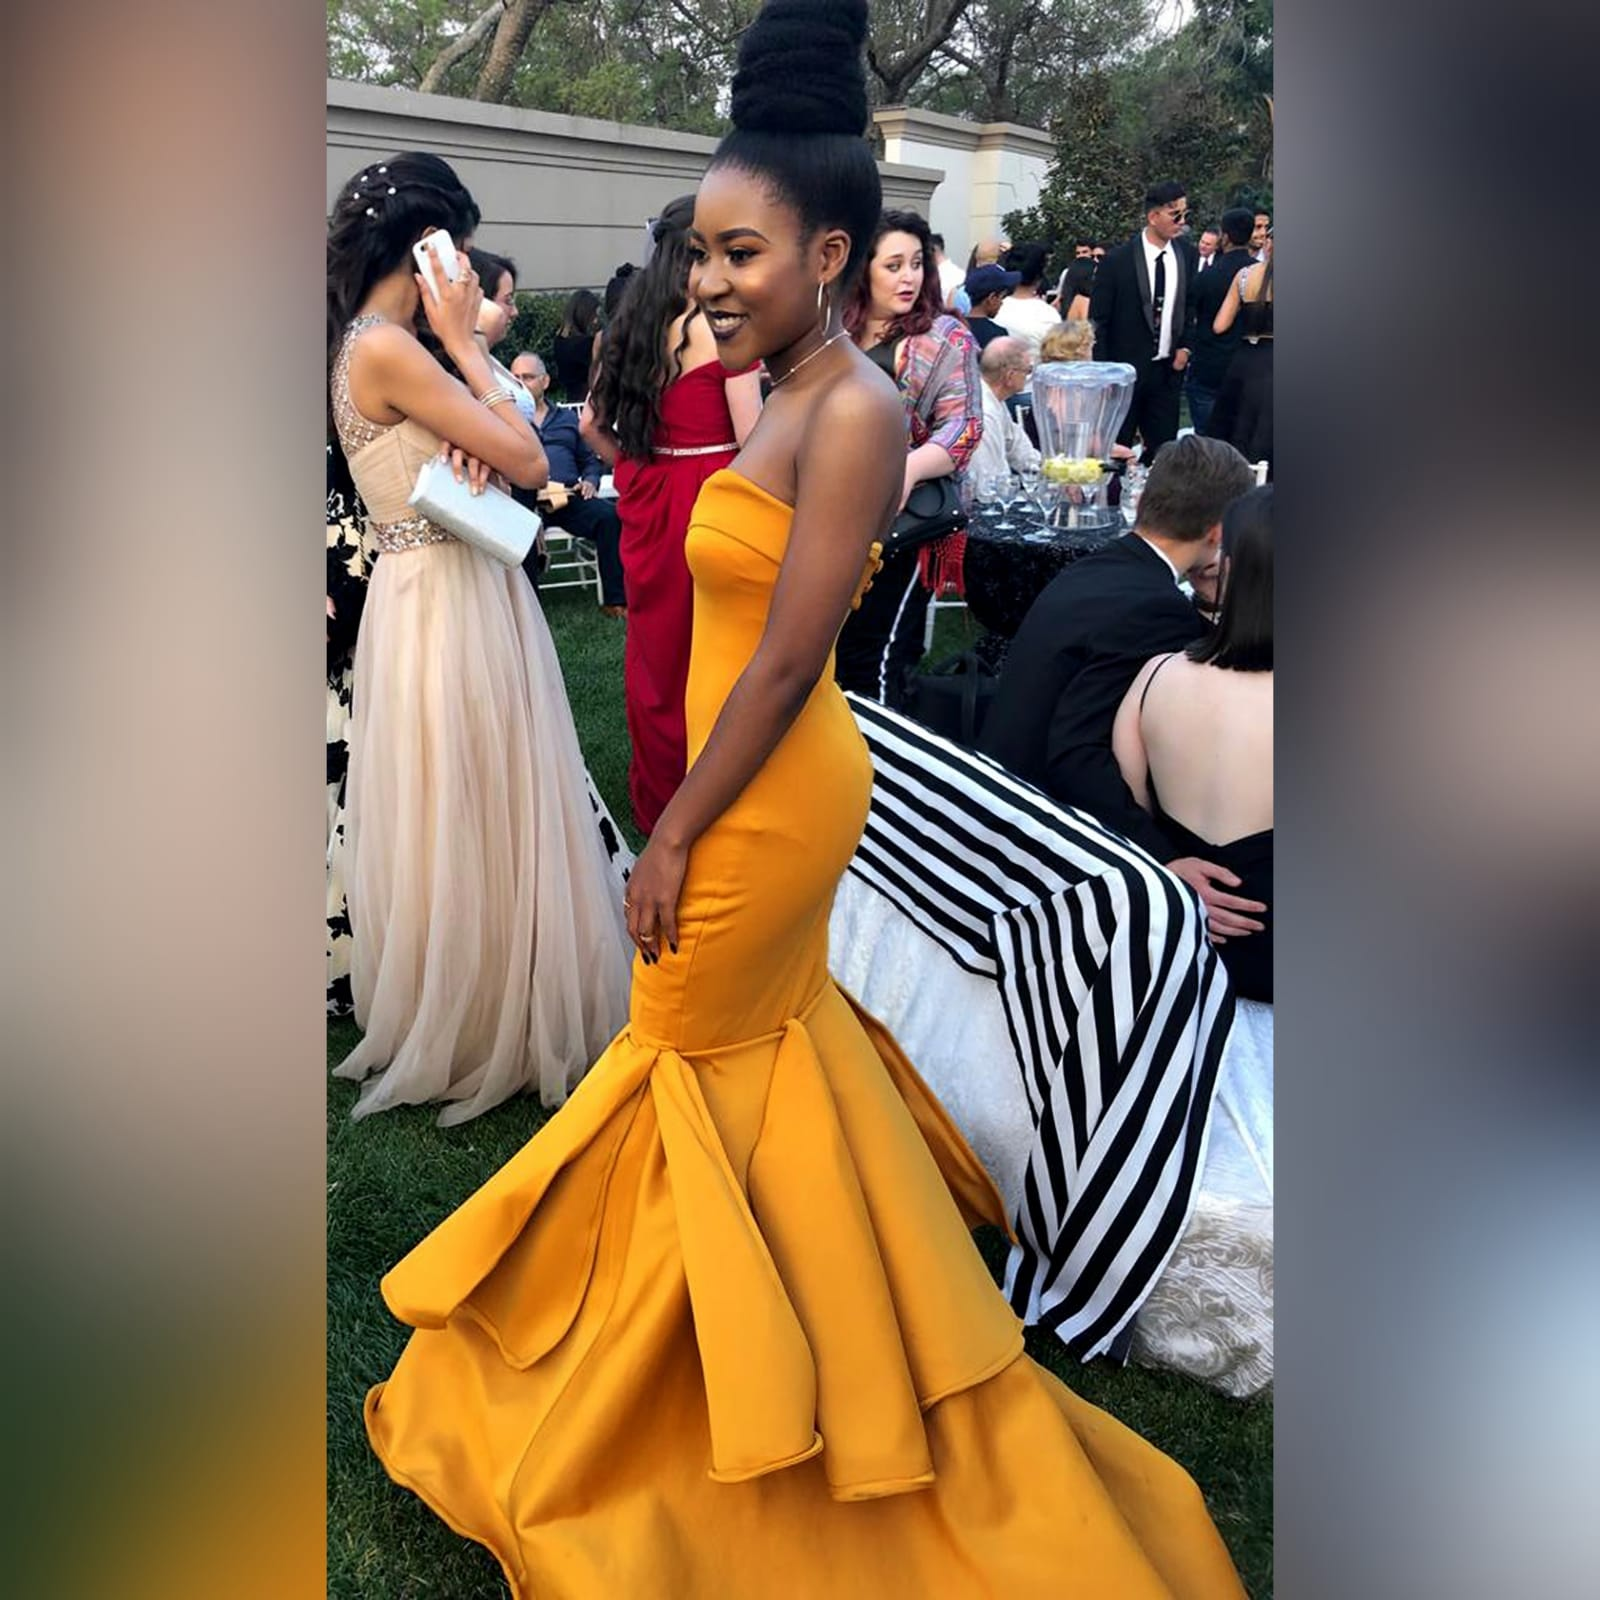 Mustard yellow sweetheart neckline mermaid prom dress 4 mustard yellow sweetheart neckline mermaid prom dress. With train and detailed stiff tubes